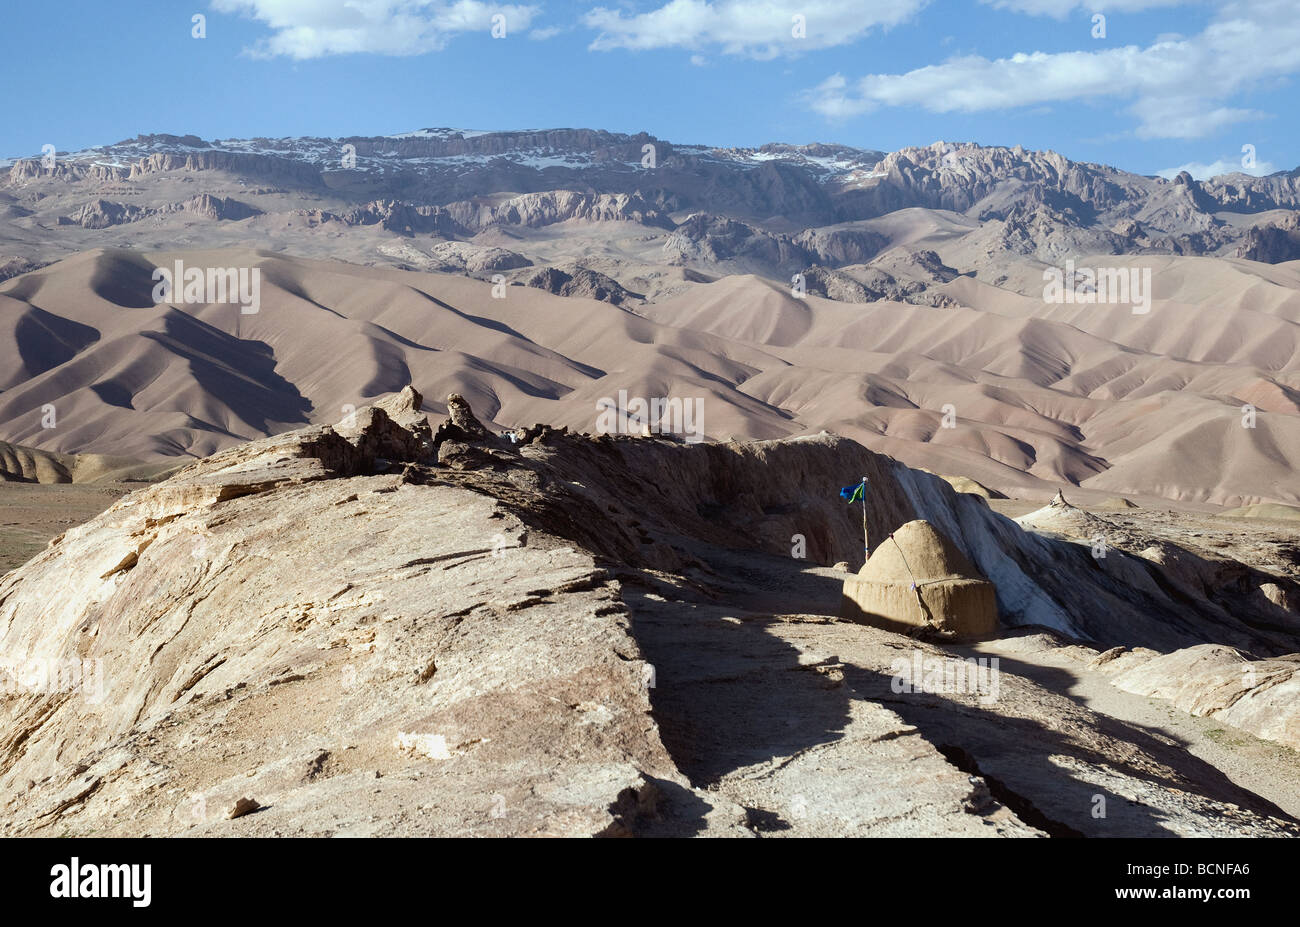 In Bamiyan's Dragon Valley a shrine {centre,right) honors Ali, the prophet Mohammed's son-in-law, for slaying - Stock Image